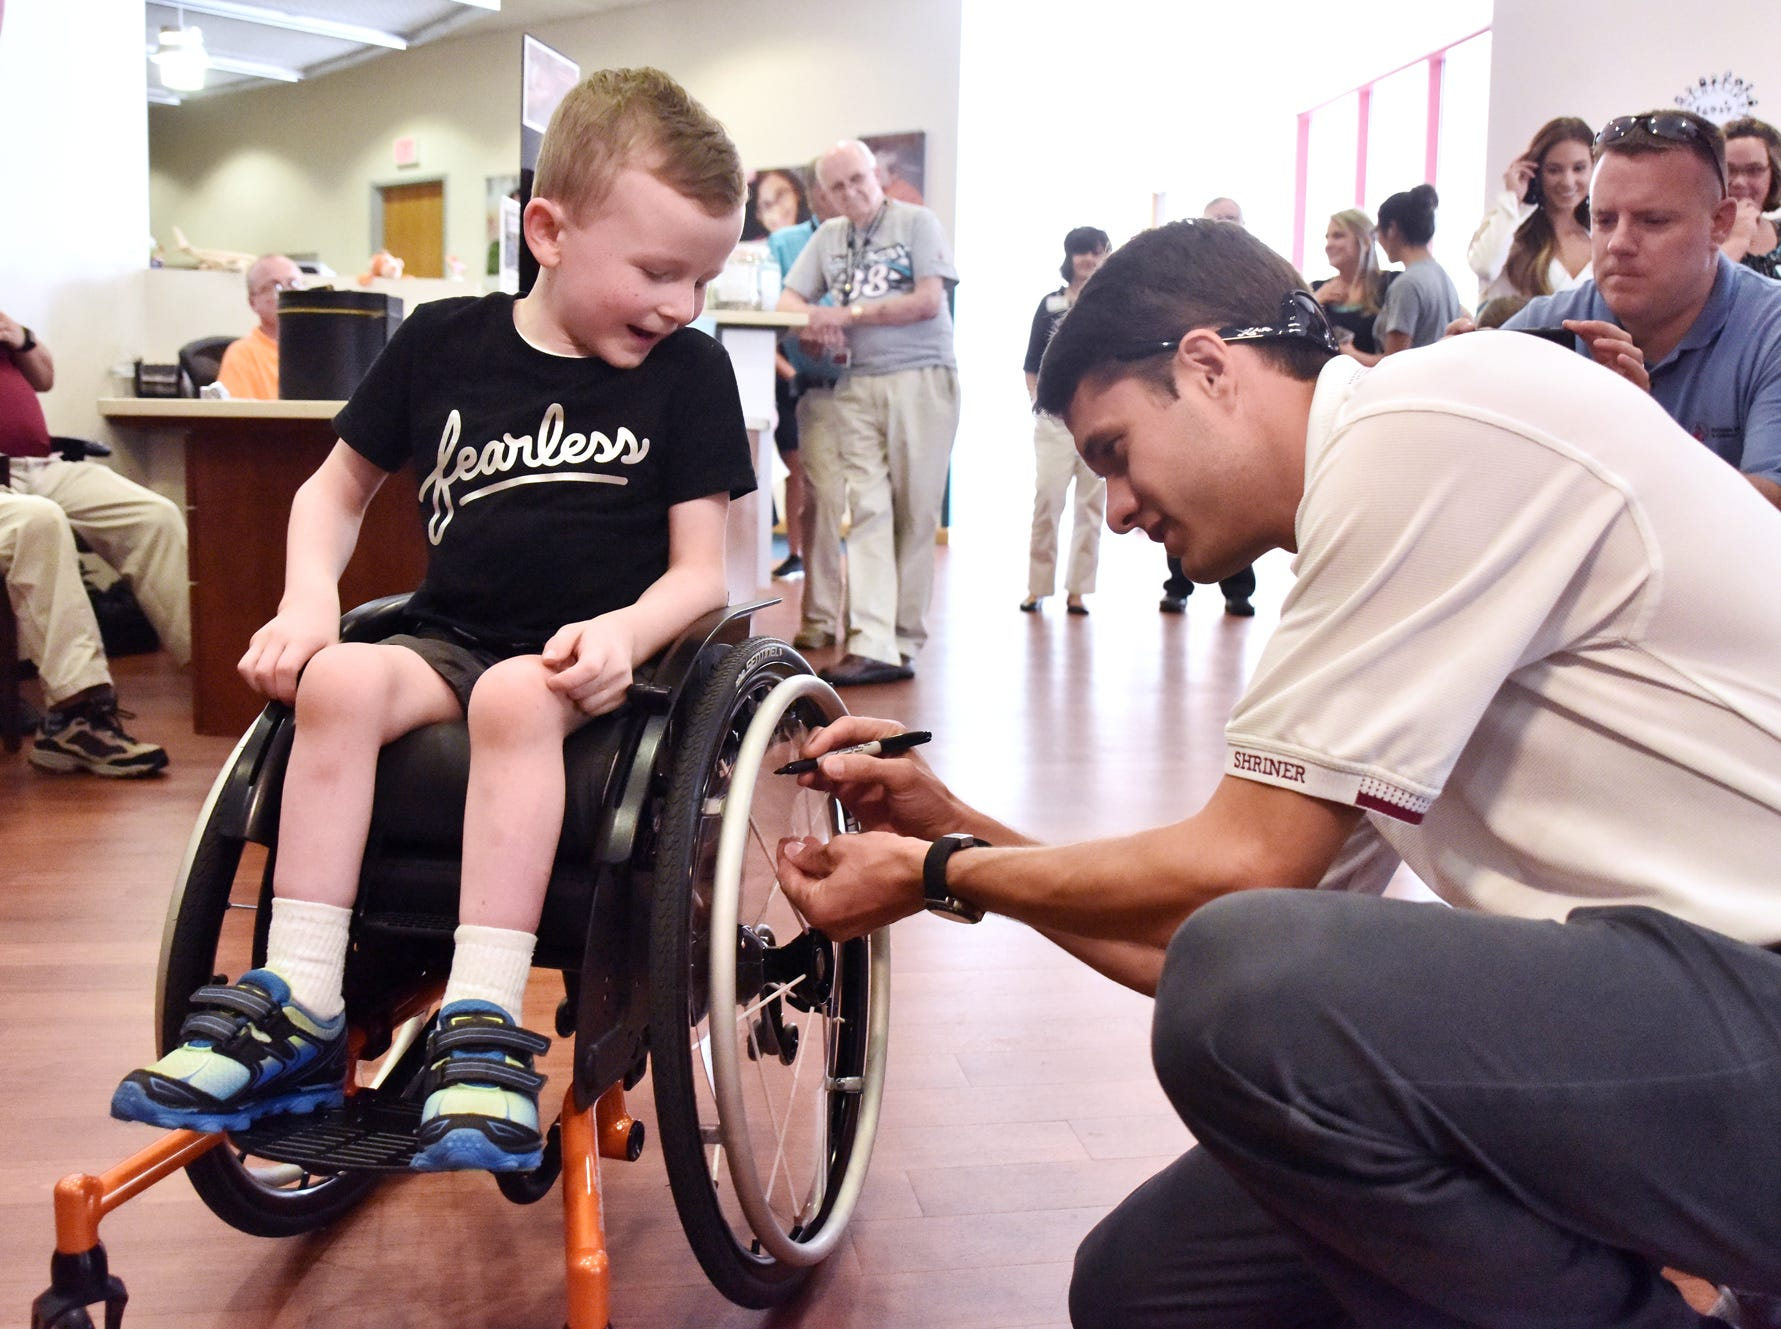 Wyatt Banks, 5, has his wheelchair signed by NASCAR driver and Shriner David Raga at the Shriners Hosptial for Children in Greenville on August 15, 2018.